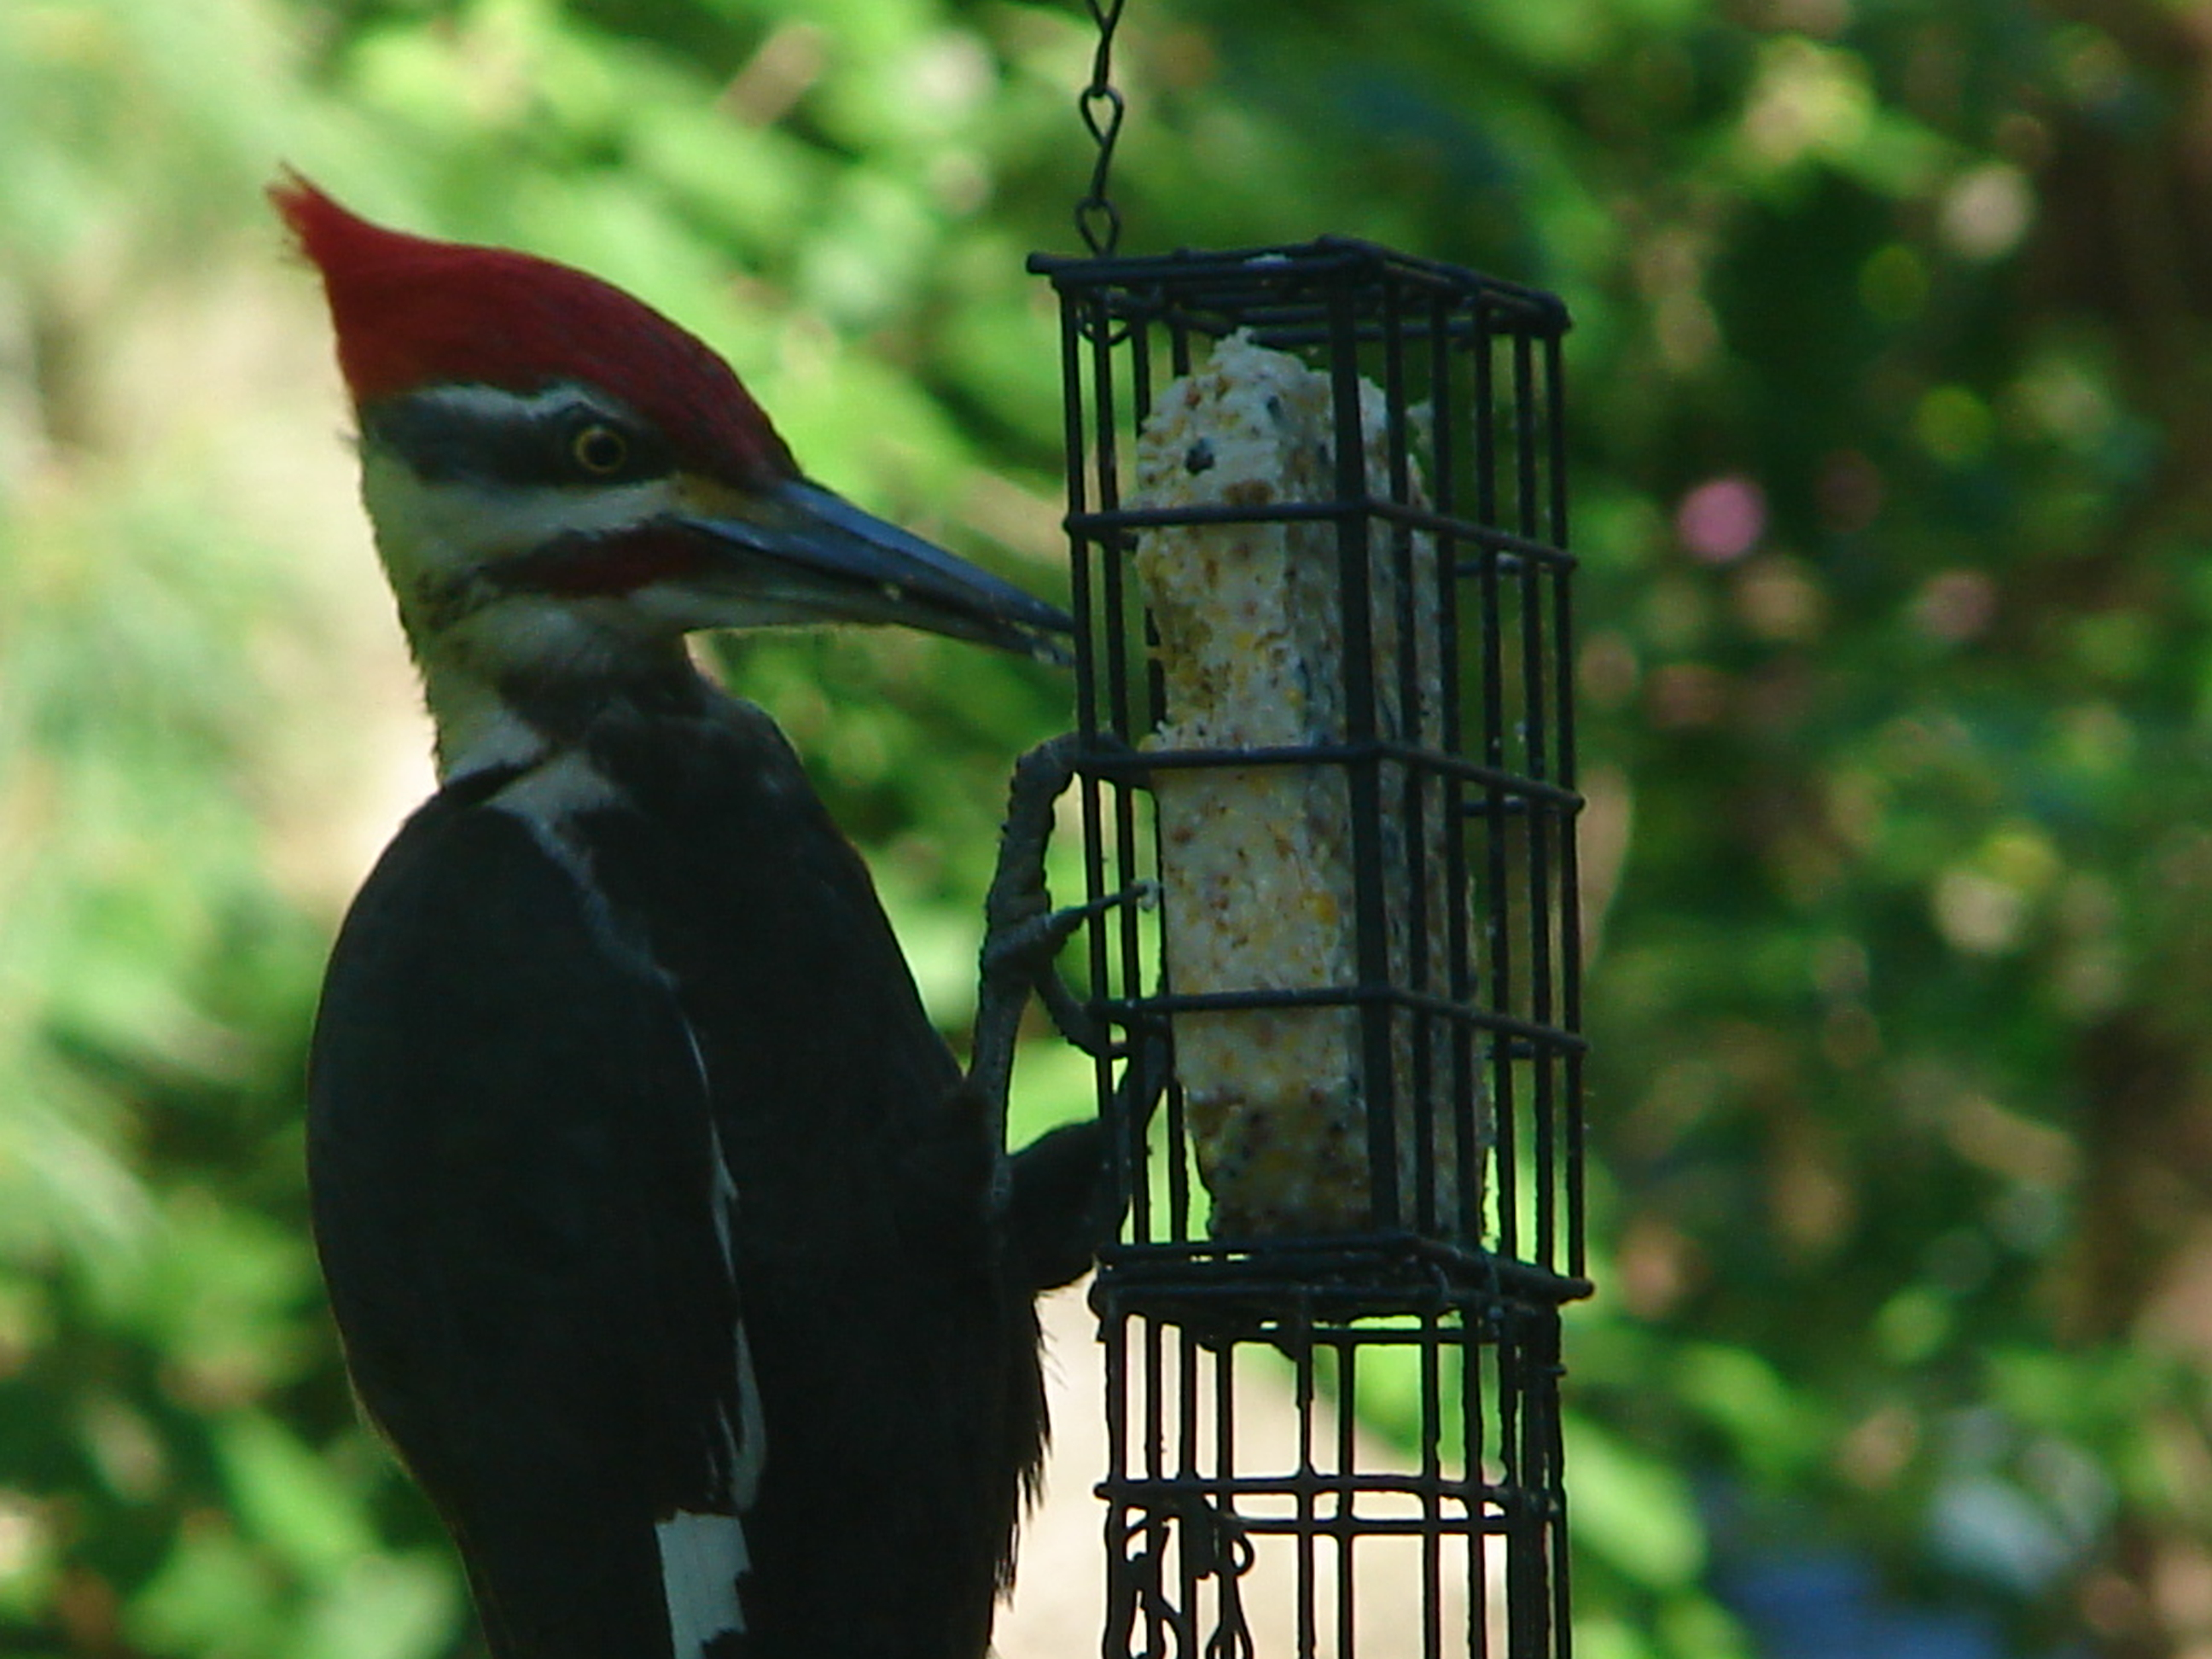 Determination: Pileated Woodpecker at the Feeder